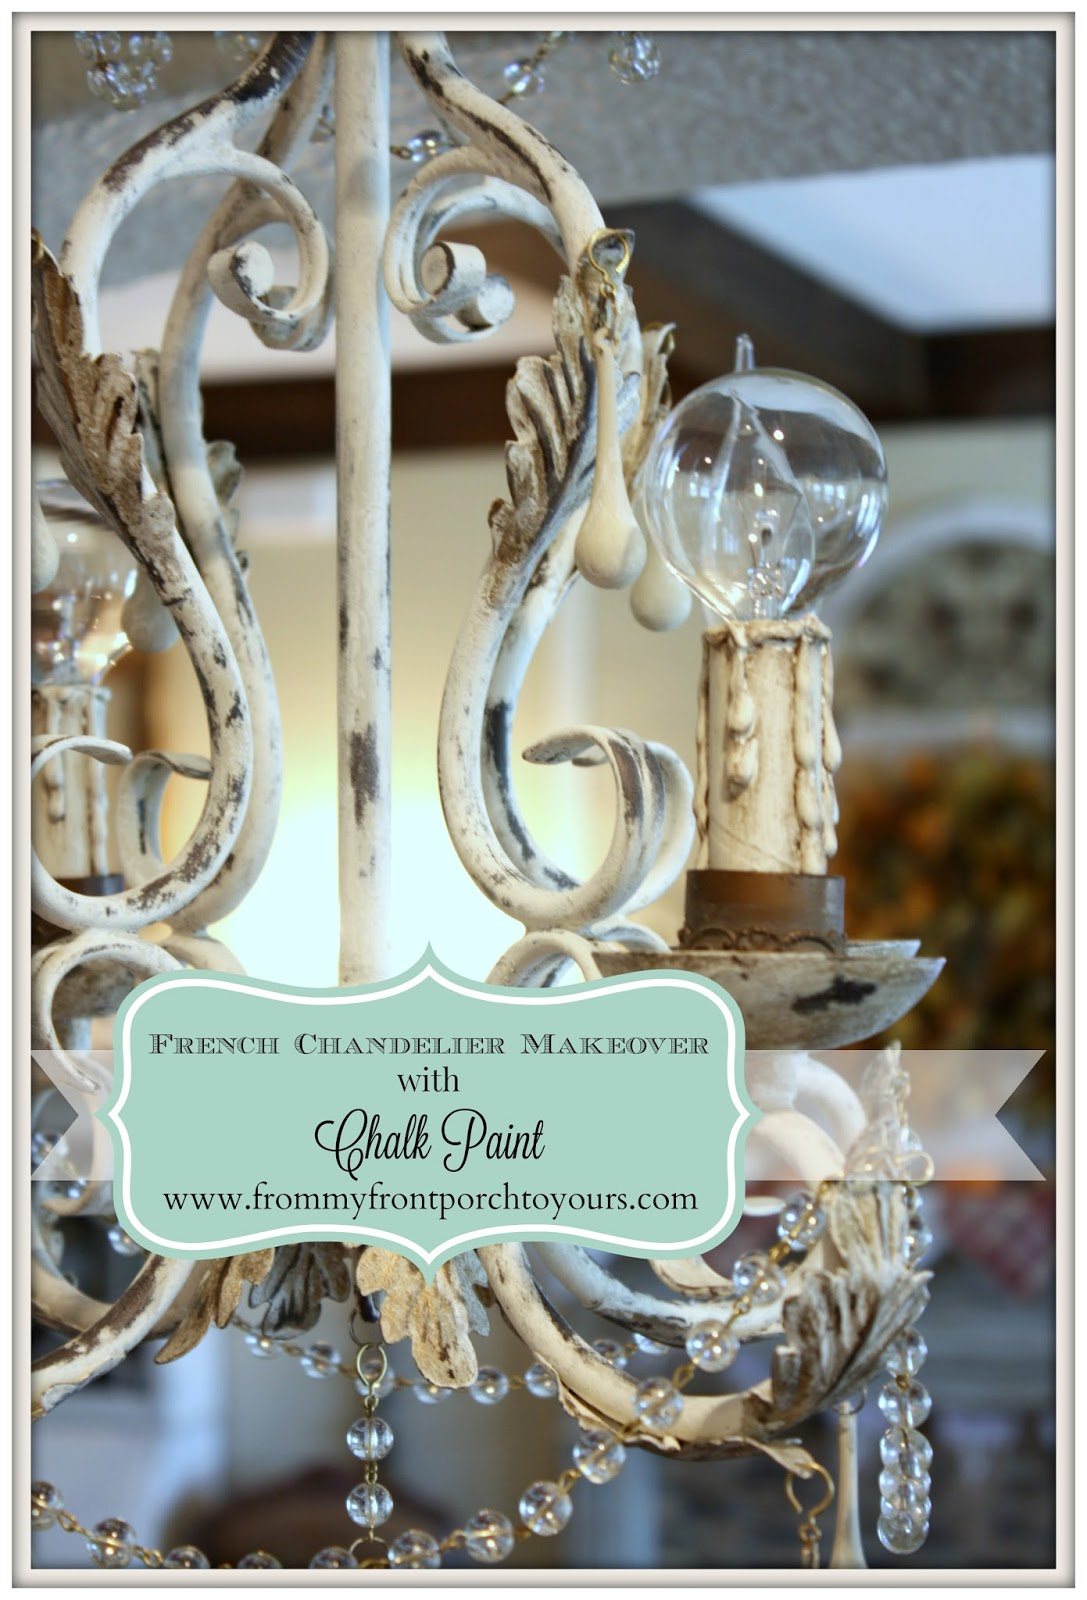 From my front porch to yours french chandelier makeover with french chandelier makeover with chalk paint mozeypictures Choice Image